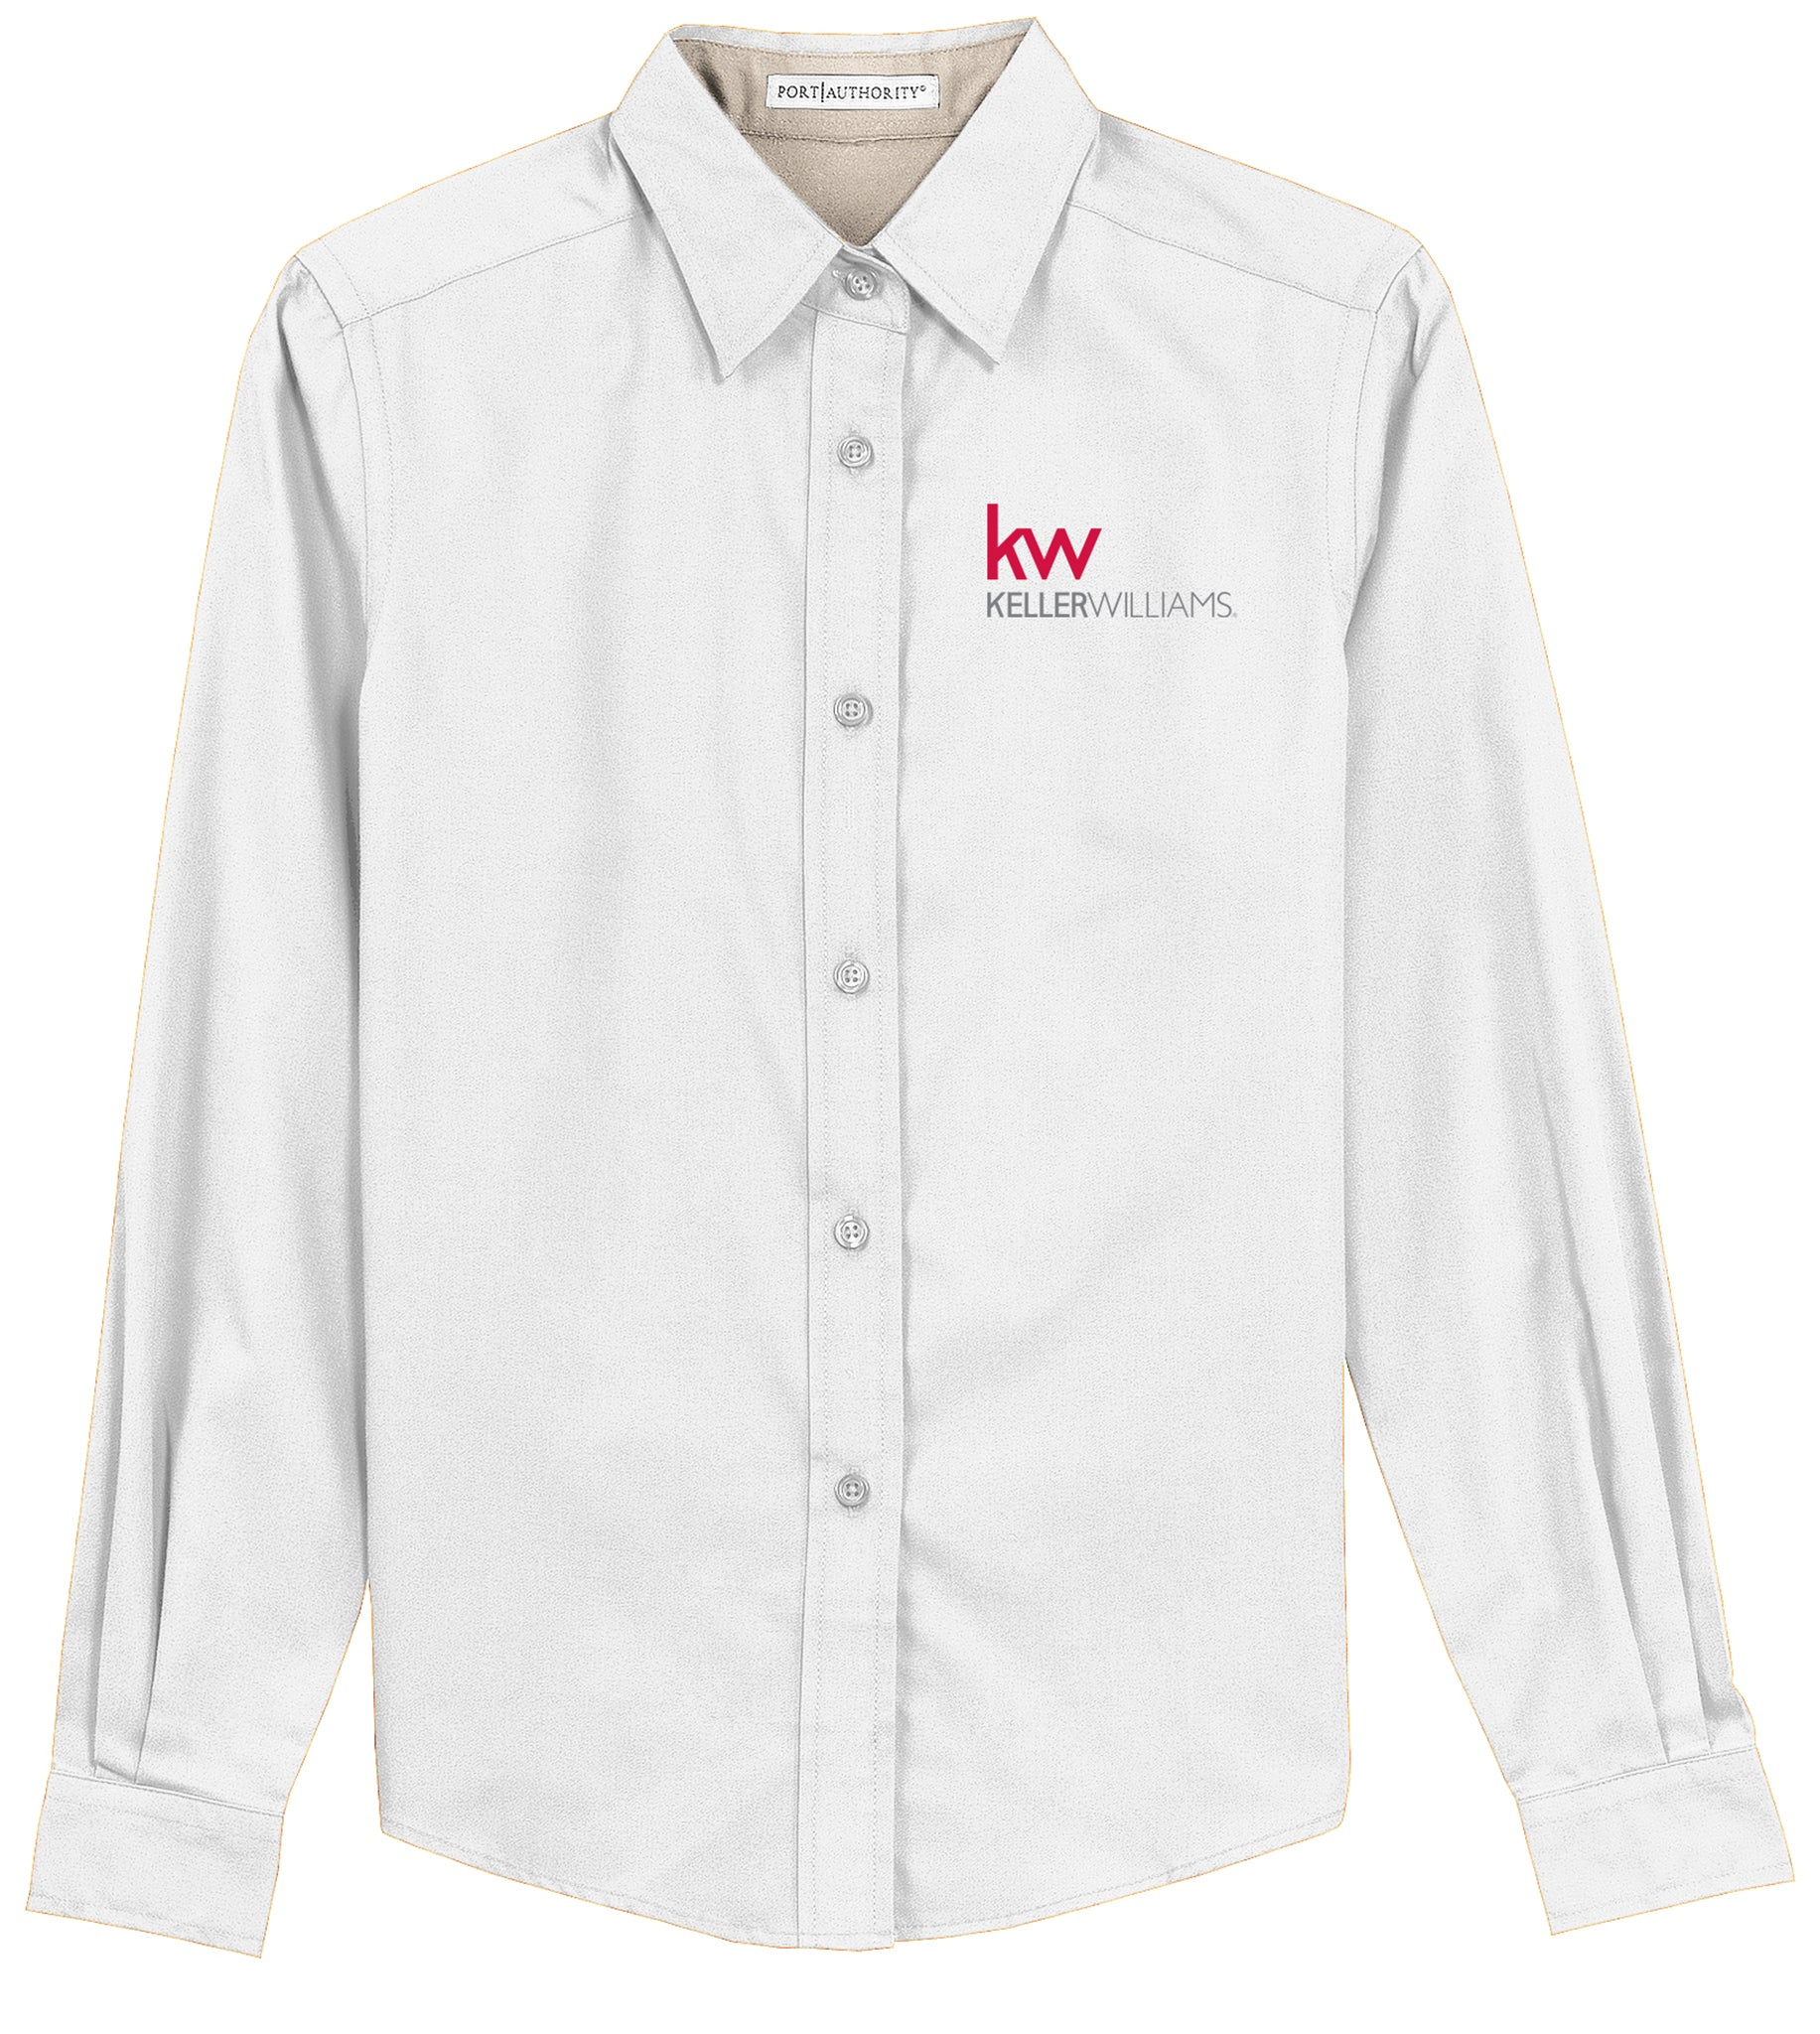 long sleeve white button down with red and grey Keller Williams logo in emboidery